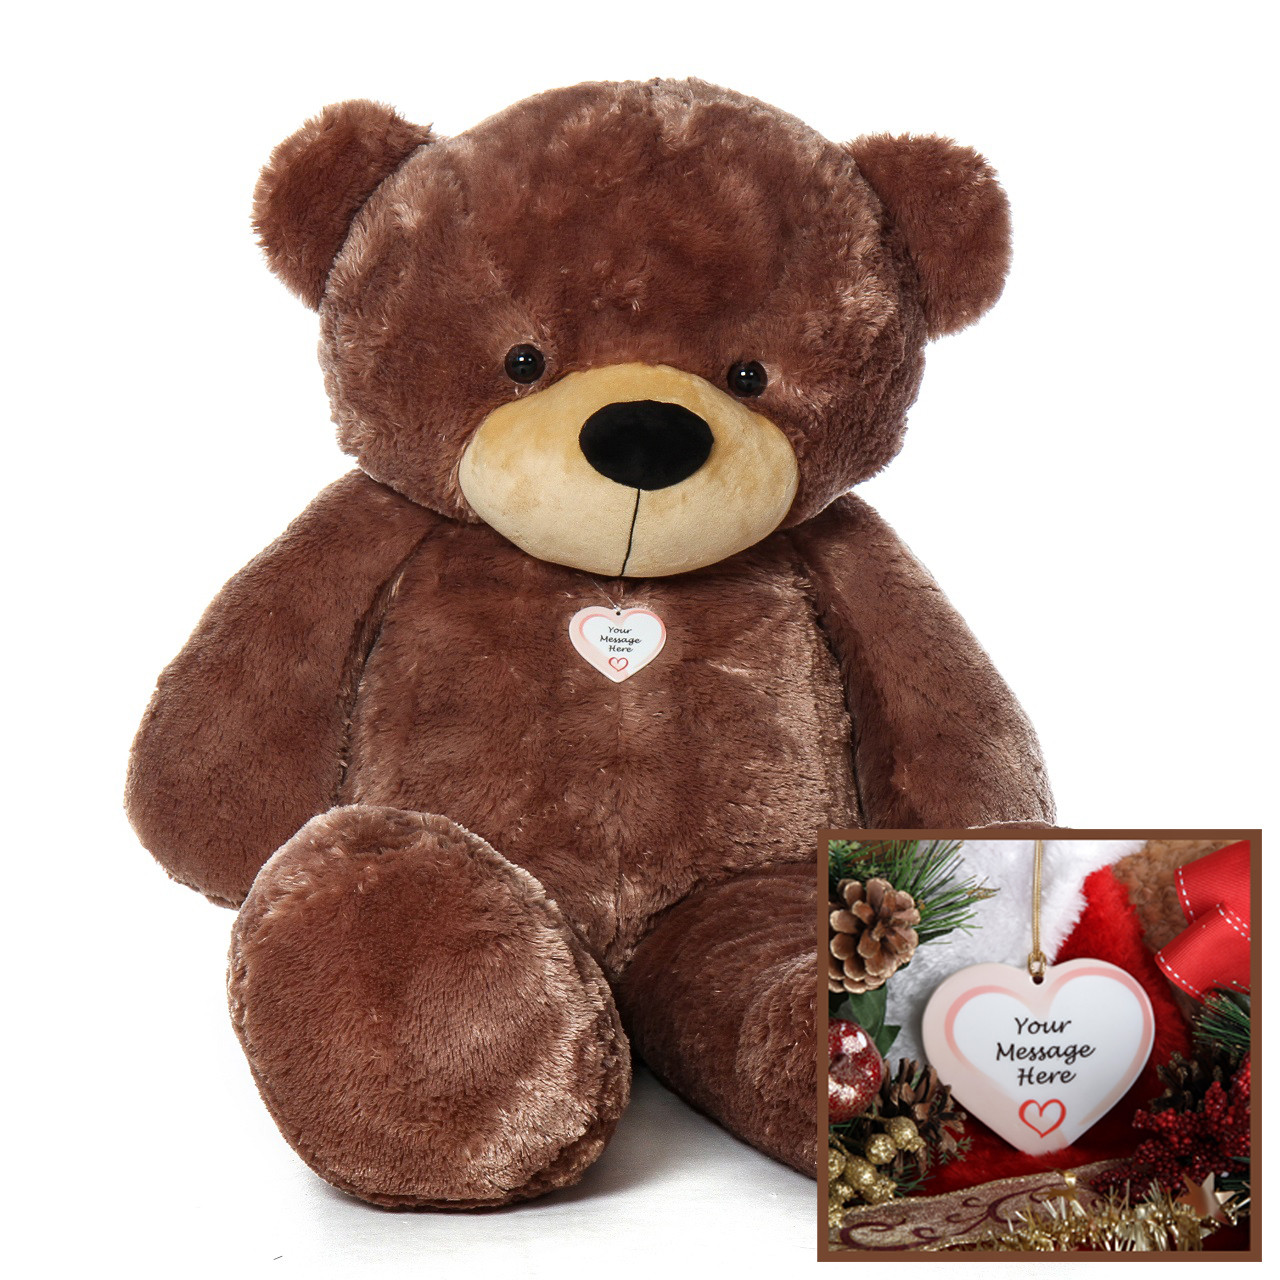 Giant Teddy 5 Foot Christmas Teddy Bear with Personalized Heart Ornament